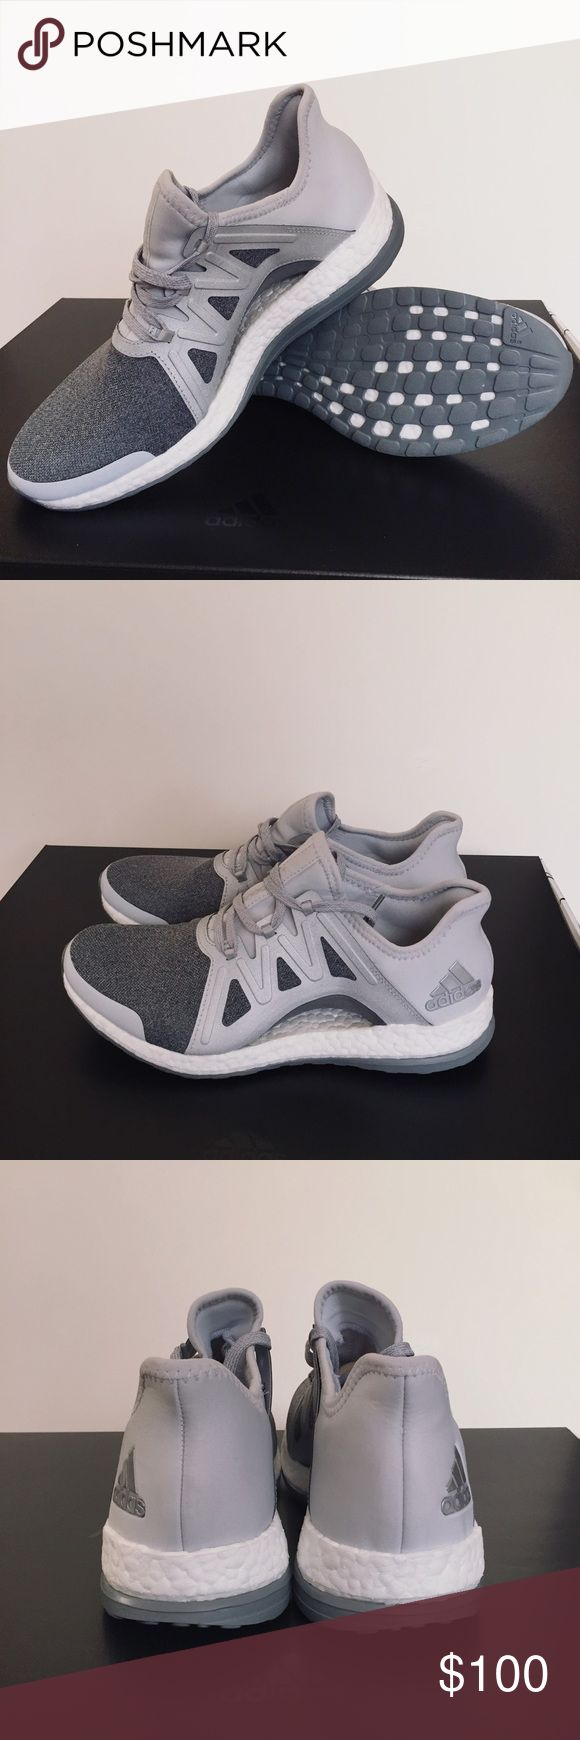 Adidas Avenue A Pure Boost Xpose Sneakers Sz 8.5 Designed go respond to the ways a women's foot moves as she runs, the shoes floating arch hugs and adapts your foot from push-off to footstrike in the most responsive cushioning to date. Part of the Adidas Avenue A Winter 2017 Box, so will ship in a different box. Adidas Shoes Sneakers